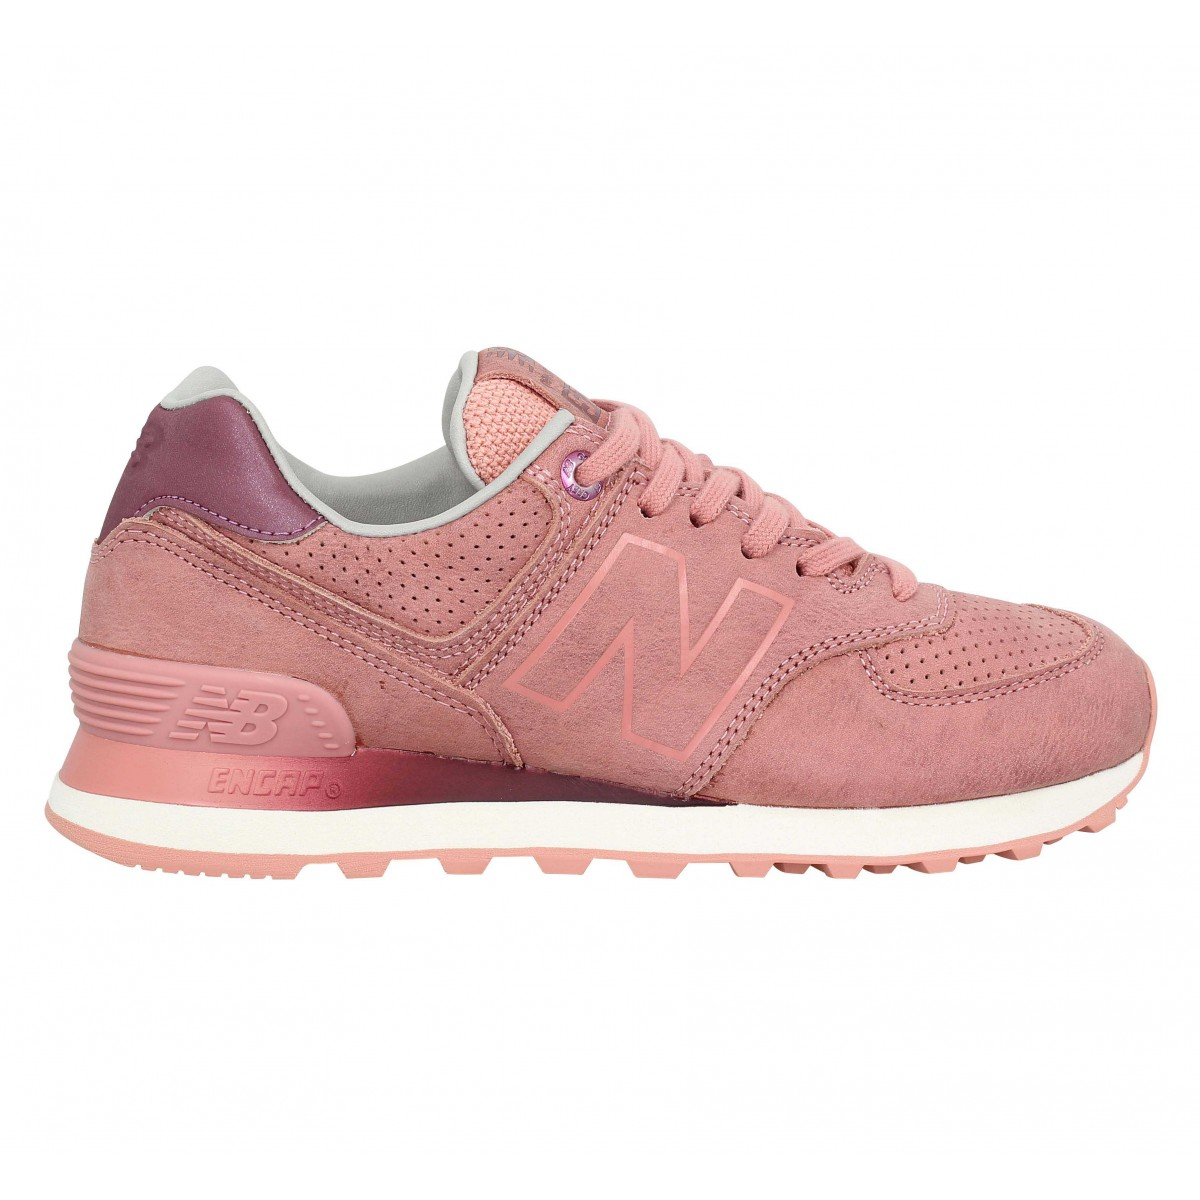 new balance 574 velours femme peach femme fanny chaussures. Black Bedroom Furniture Sets. Home Design Ideas